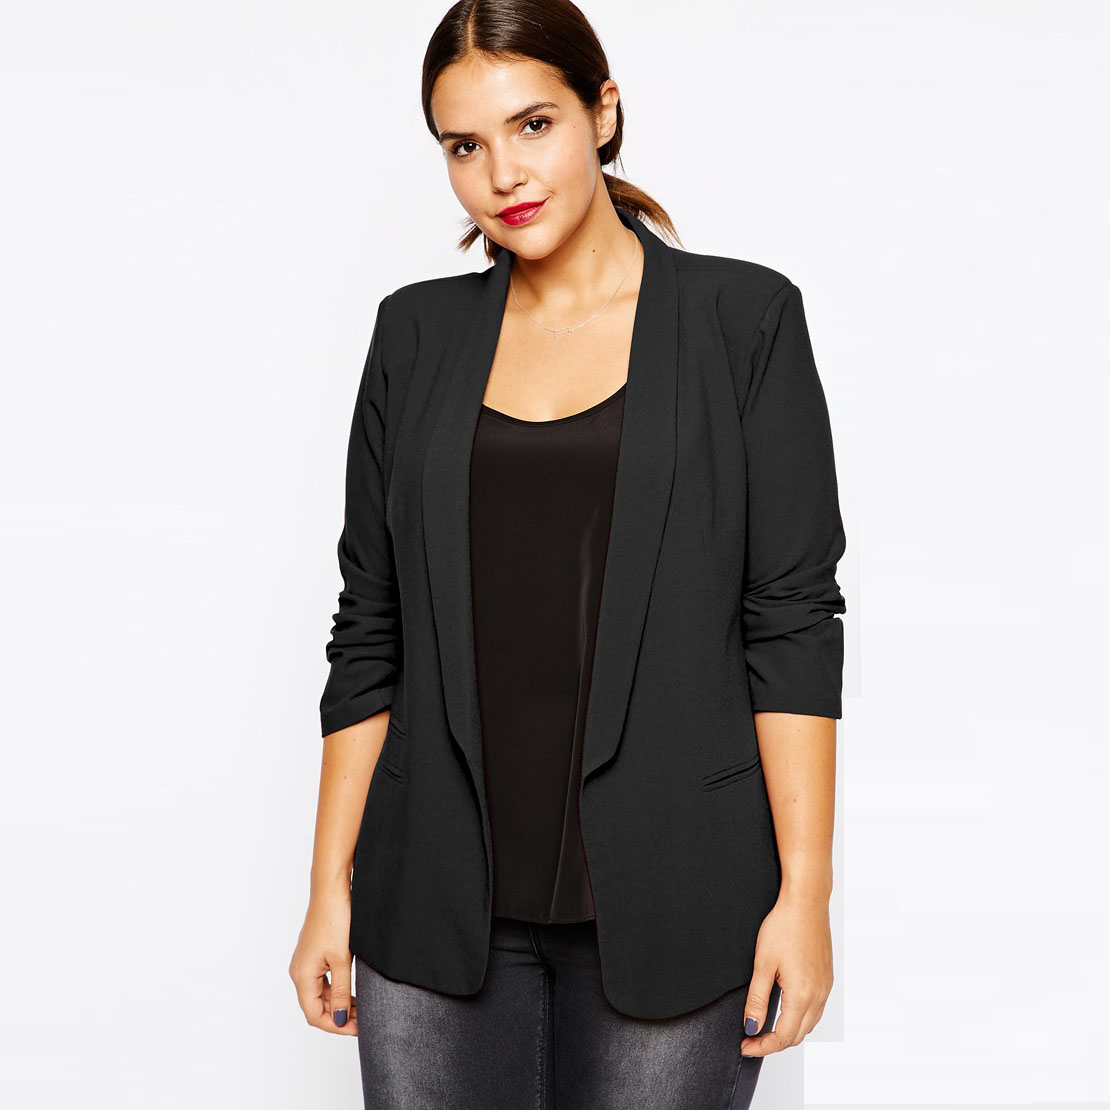 Plus Size Women Clothing Black Blazer in Crepe with Slim Lapel Office Women  Blazers And Jackets Basic Workwear 4XL 5XL 6XL 7XL-in Blazers from Women s  ... 862c720cd56f